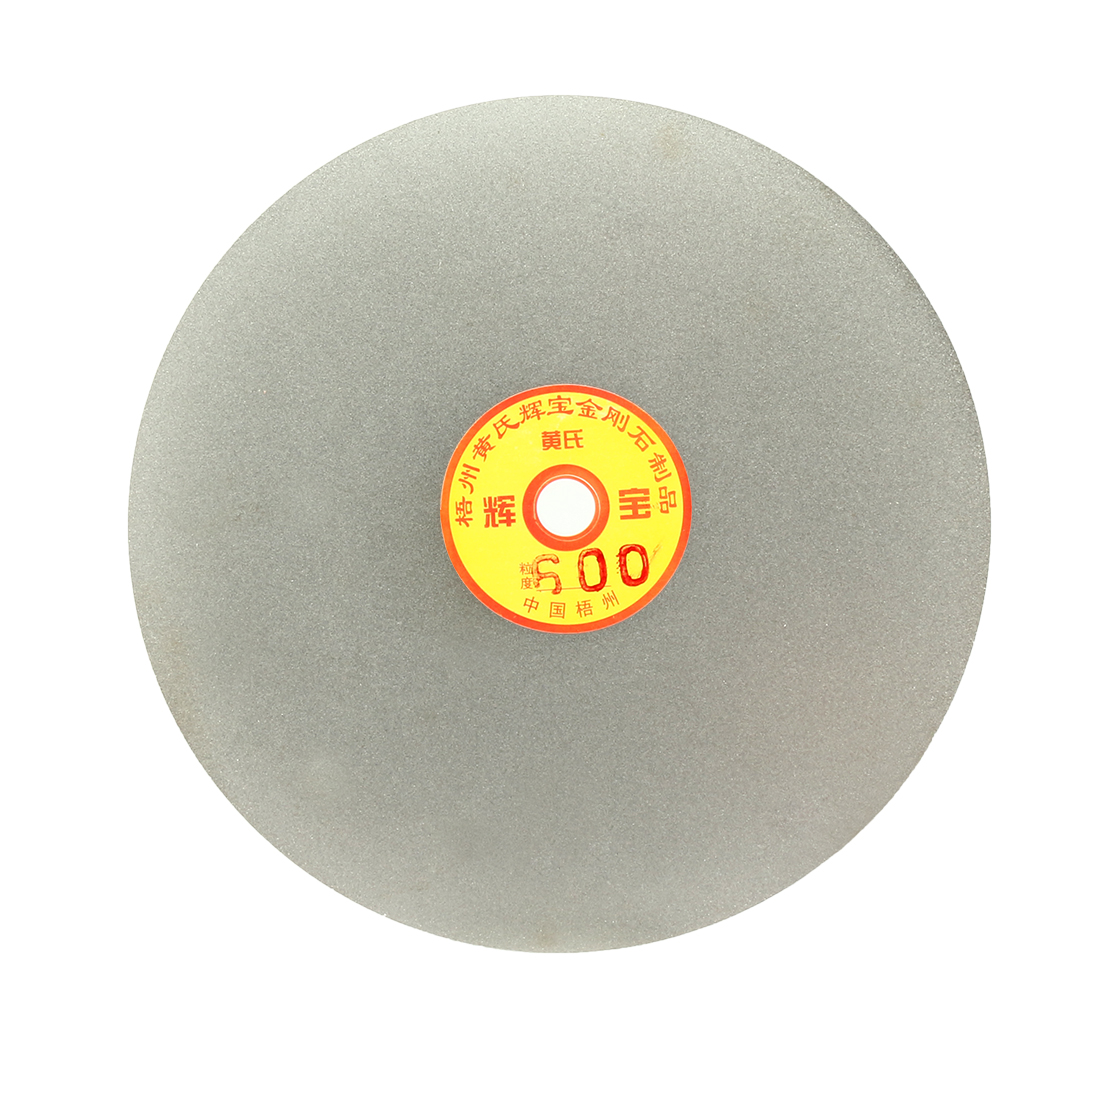 180mm 7-inch Grit 600 Diamond Coated Flat Lap Disk Wheel Grinding Sanding Disc